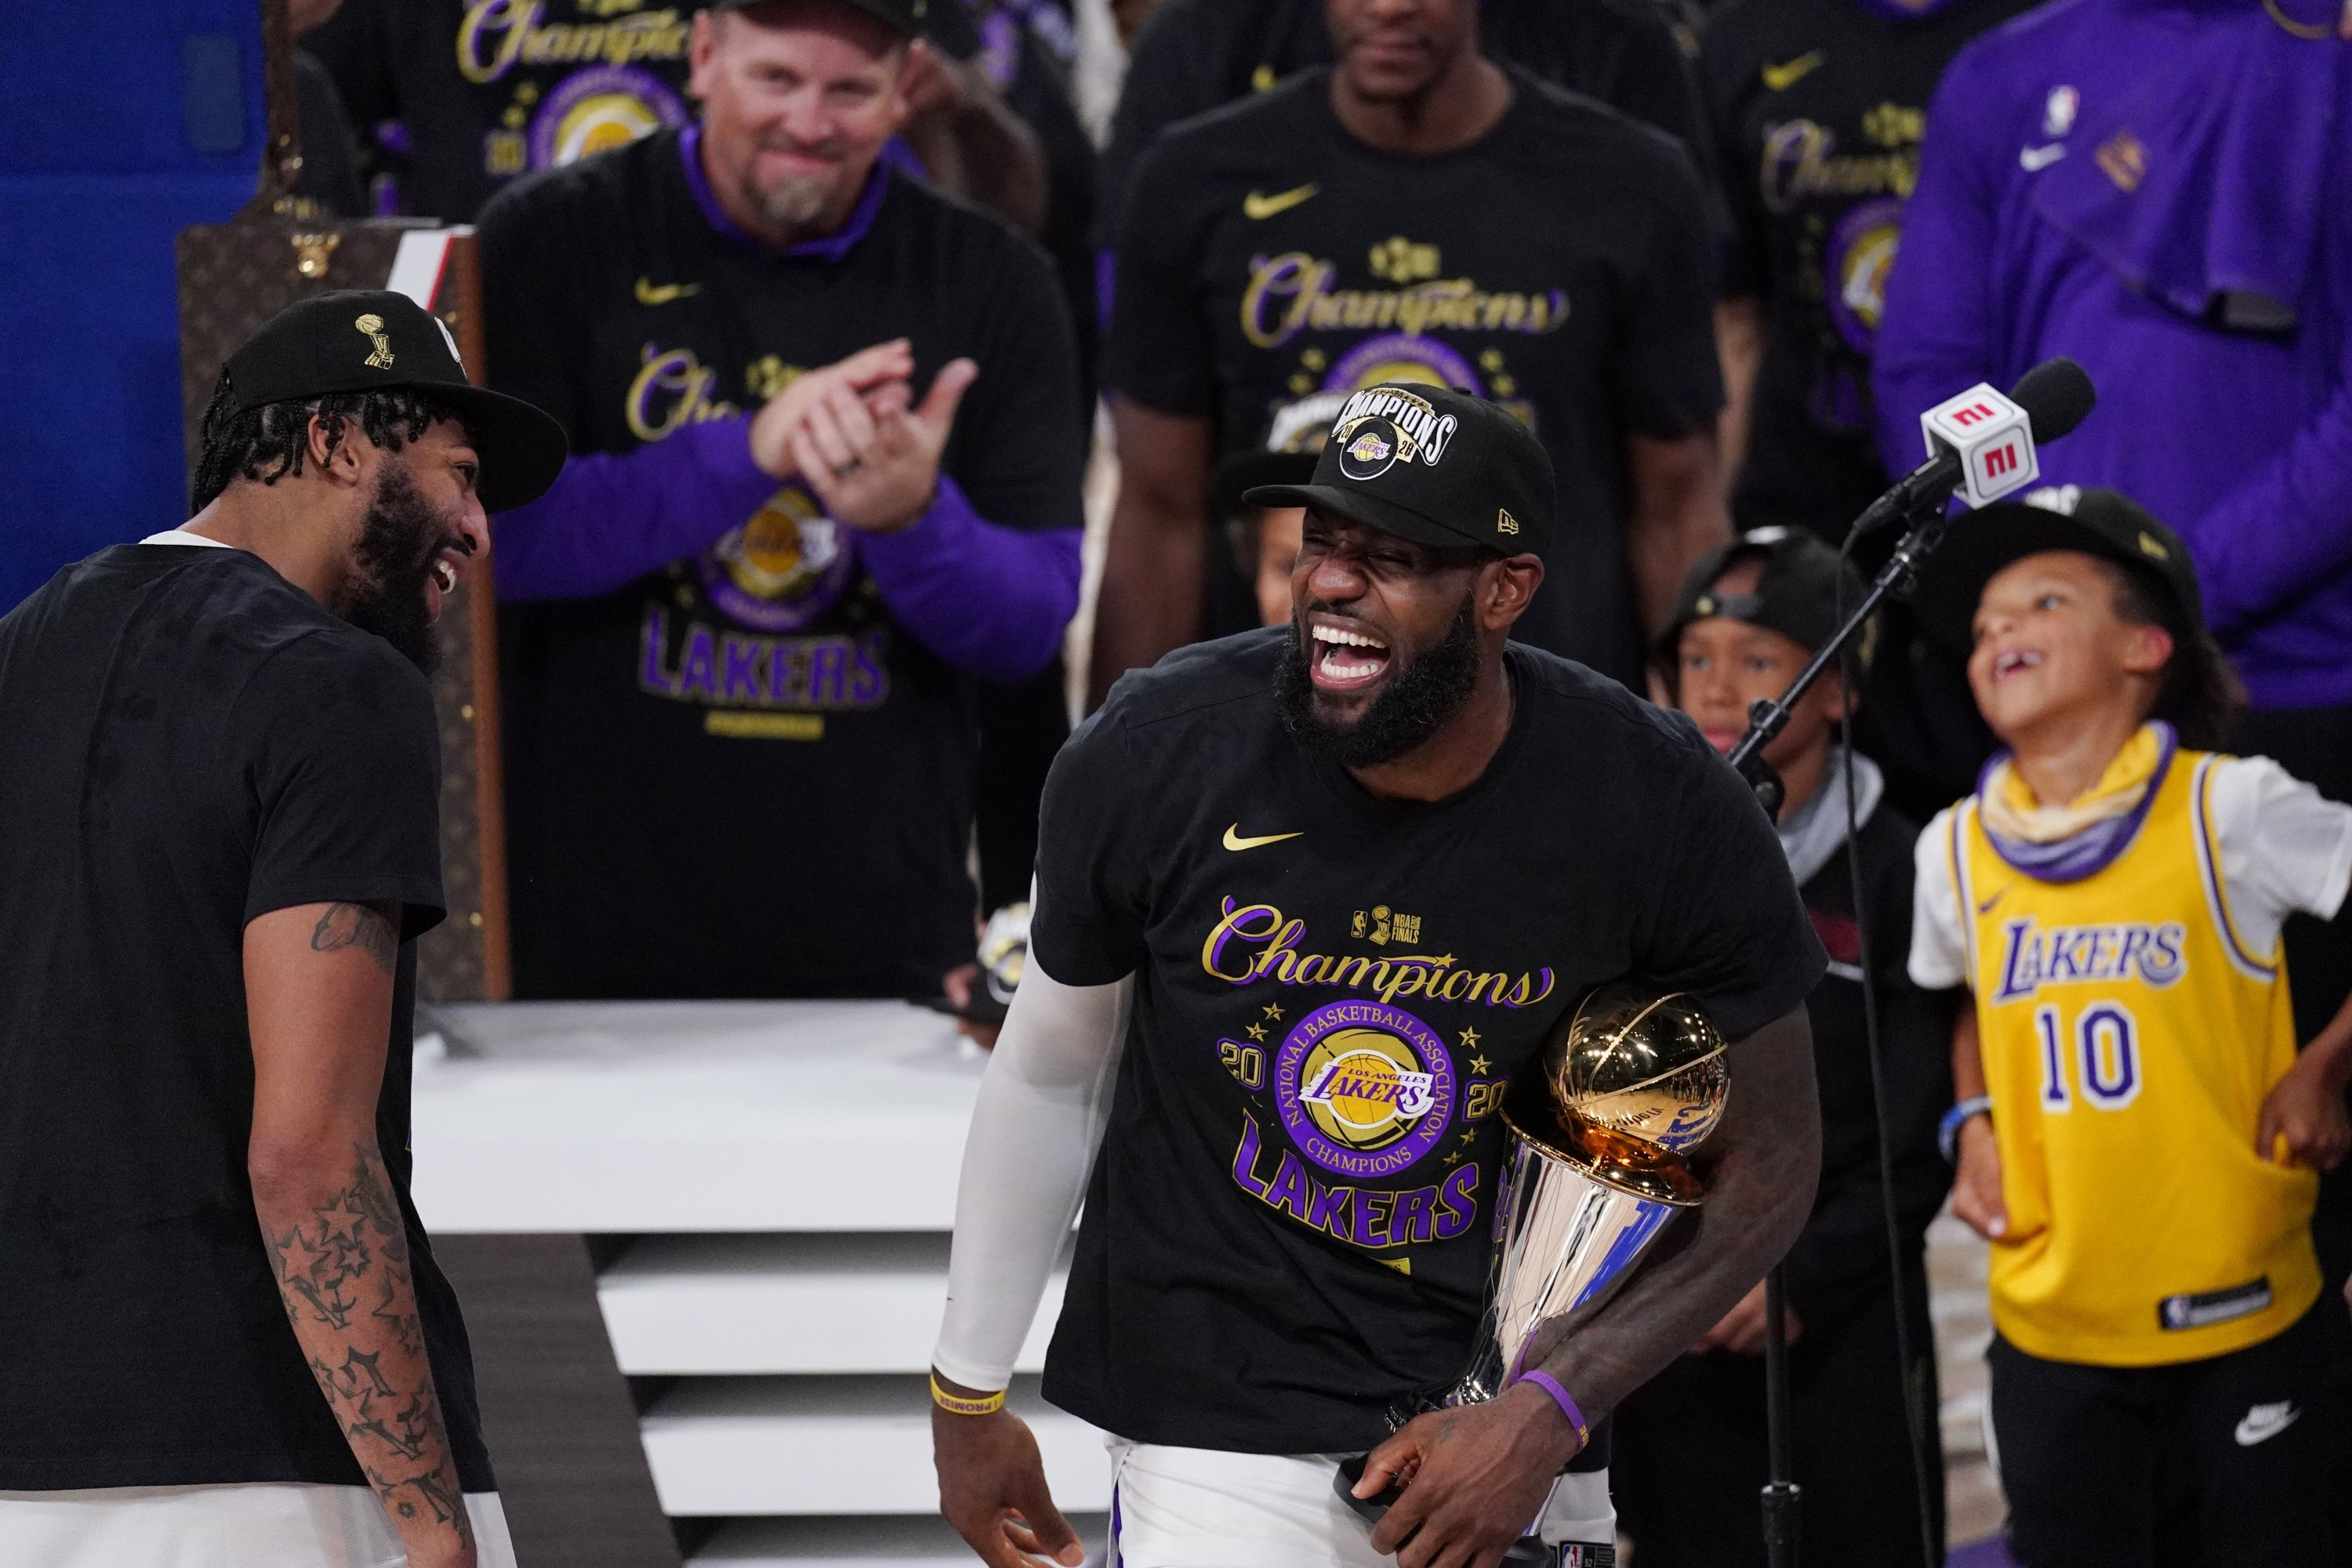 Los Angeles Lakers' LeBron James (R) holds the MVP trophy as he celebrates with Anthony Davis after defeating the Miami Heat in Game 6 of NBA Finals, in Lake Buena Vista, Florida, U.S., Oct. 11, 2020. (AP Photo)